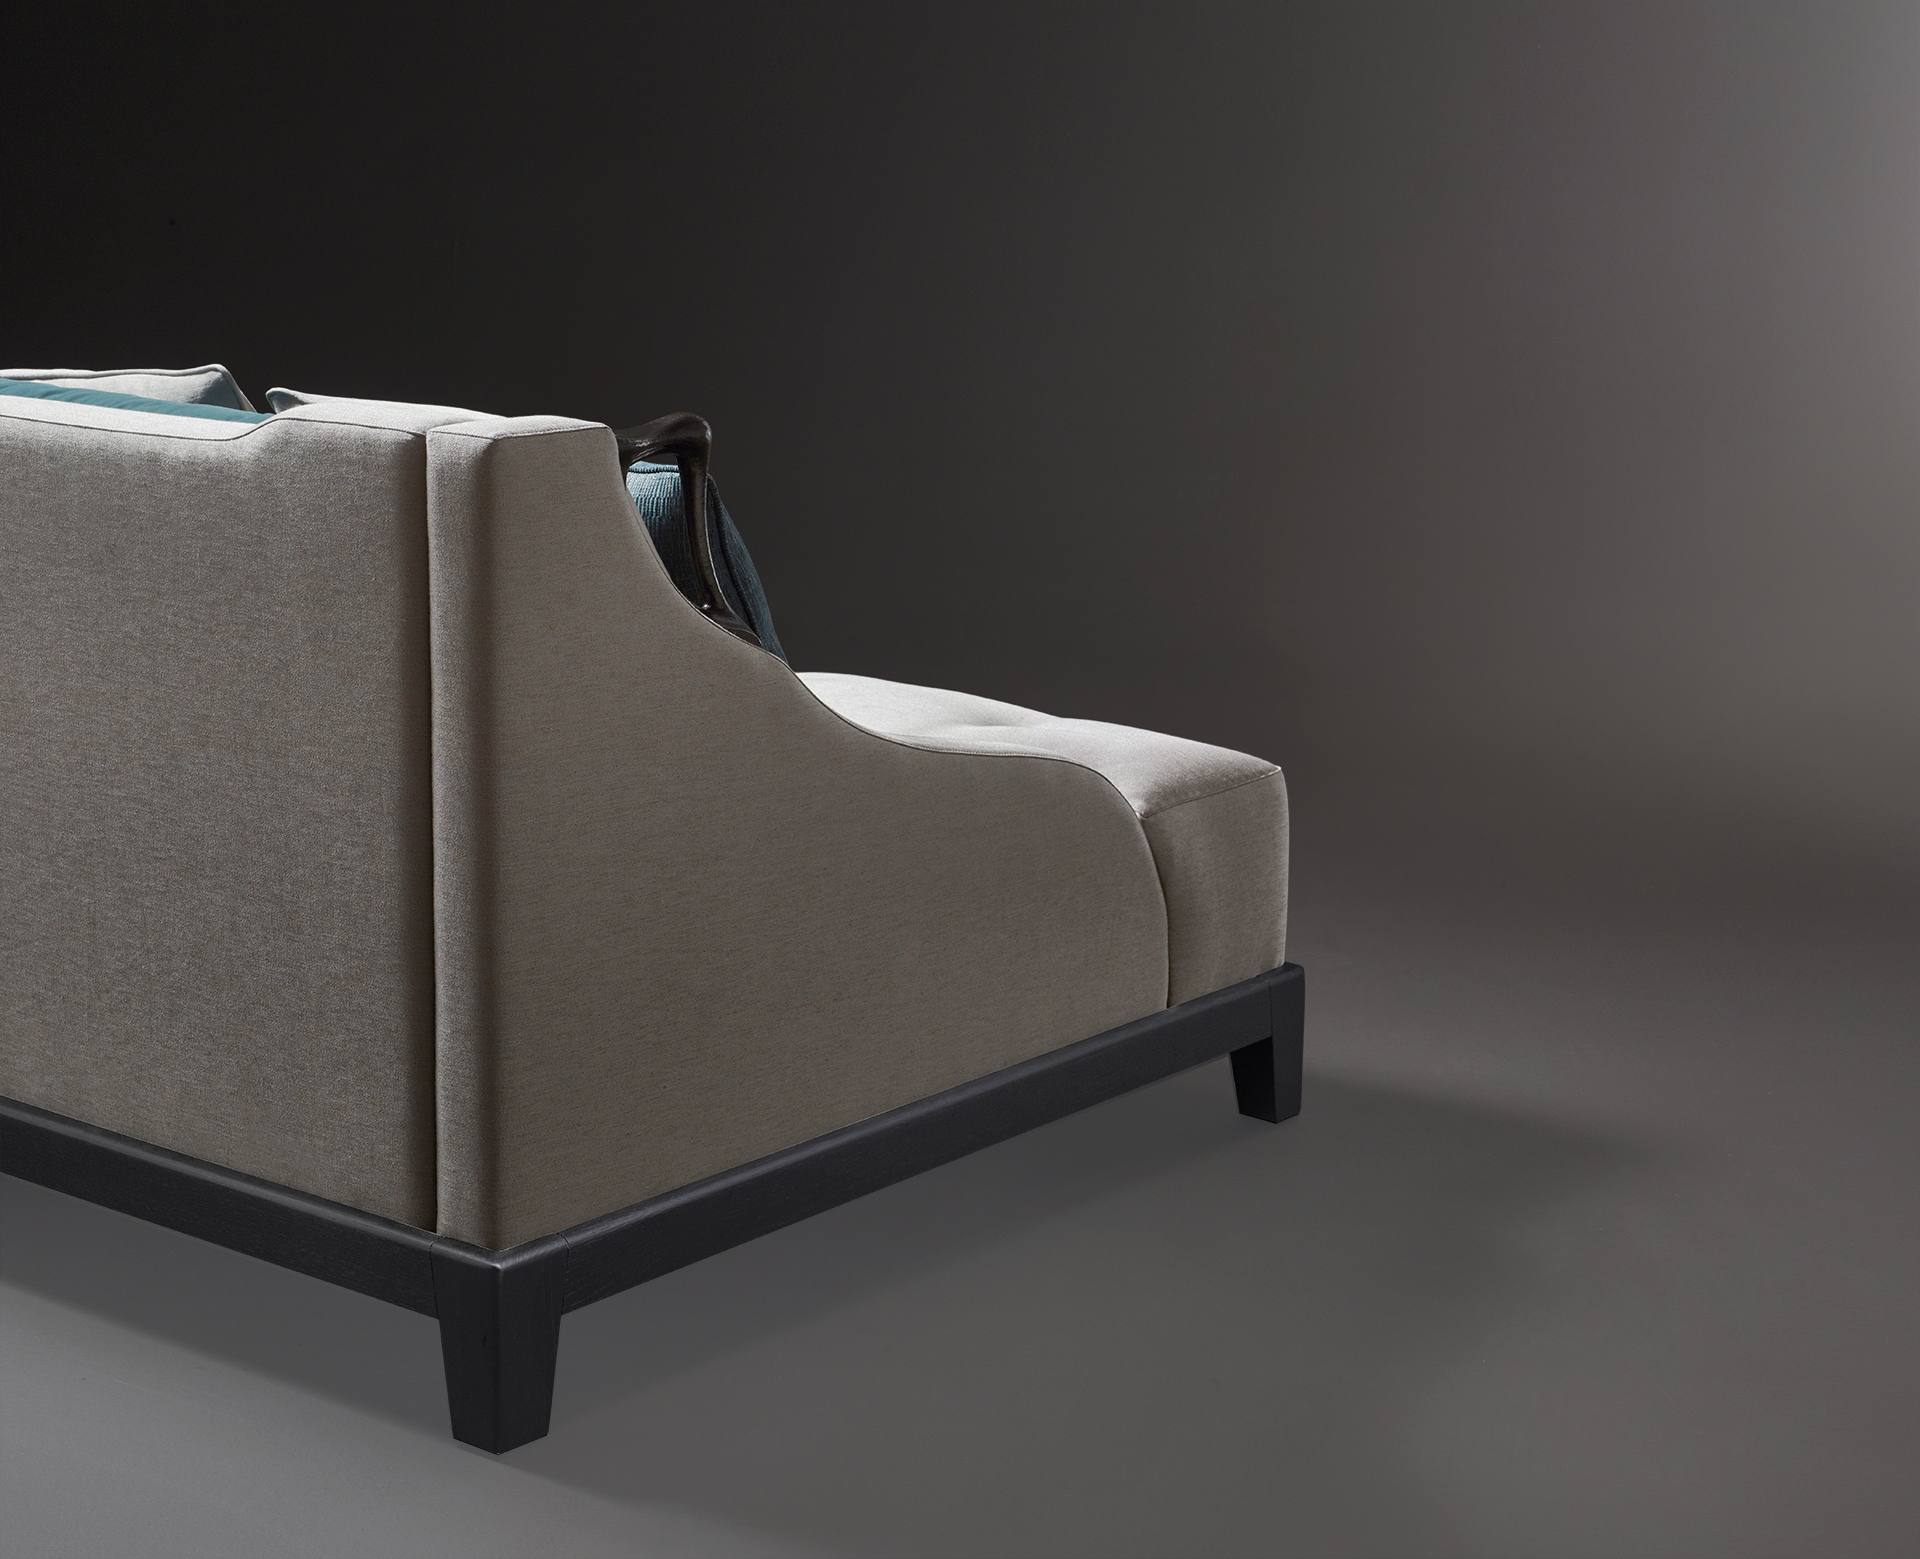 Detail of Albert, a wooden sofa covered in fabric with two bronze handles on the sides, from Promemoria's catalogue | Promemoria